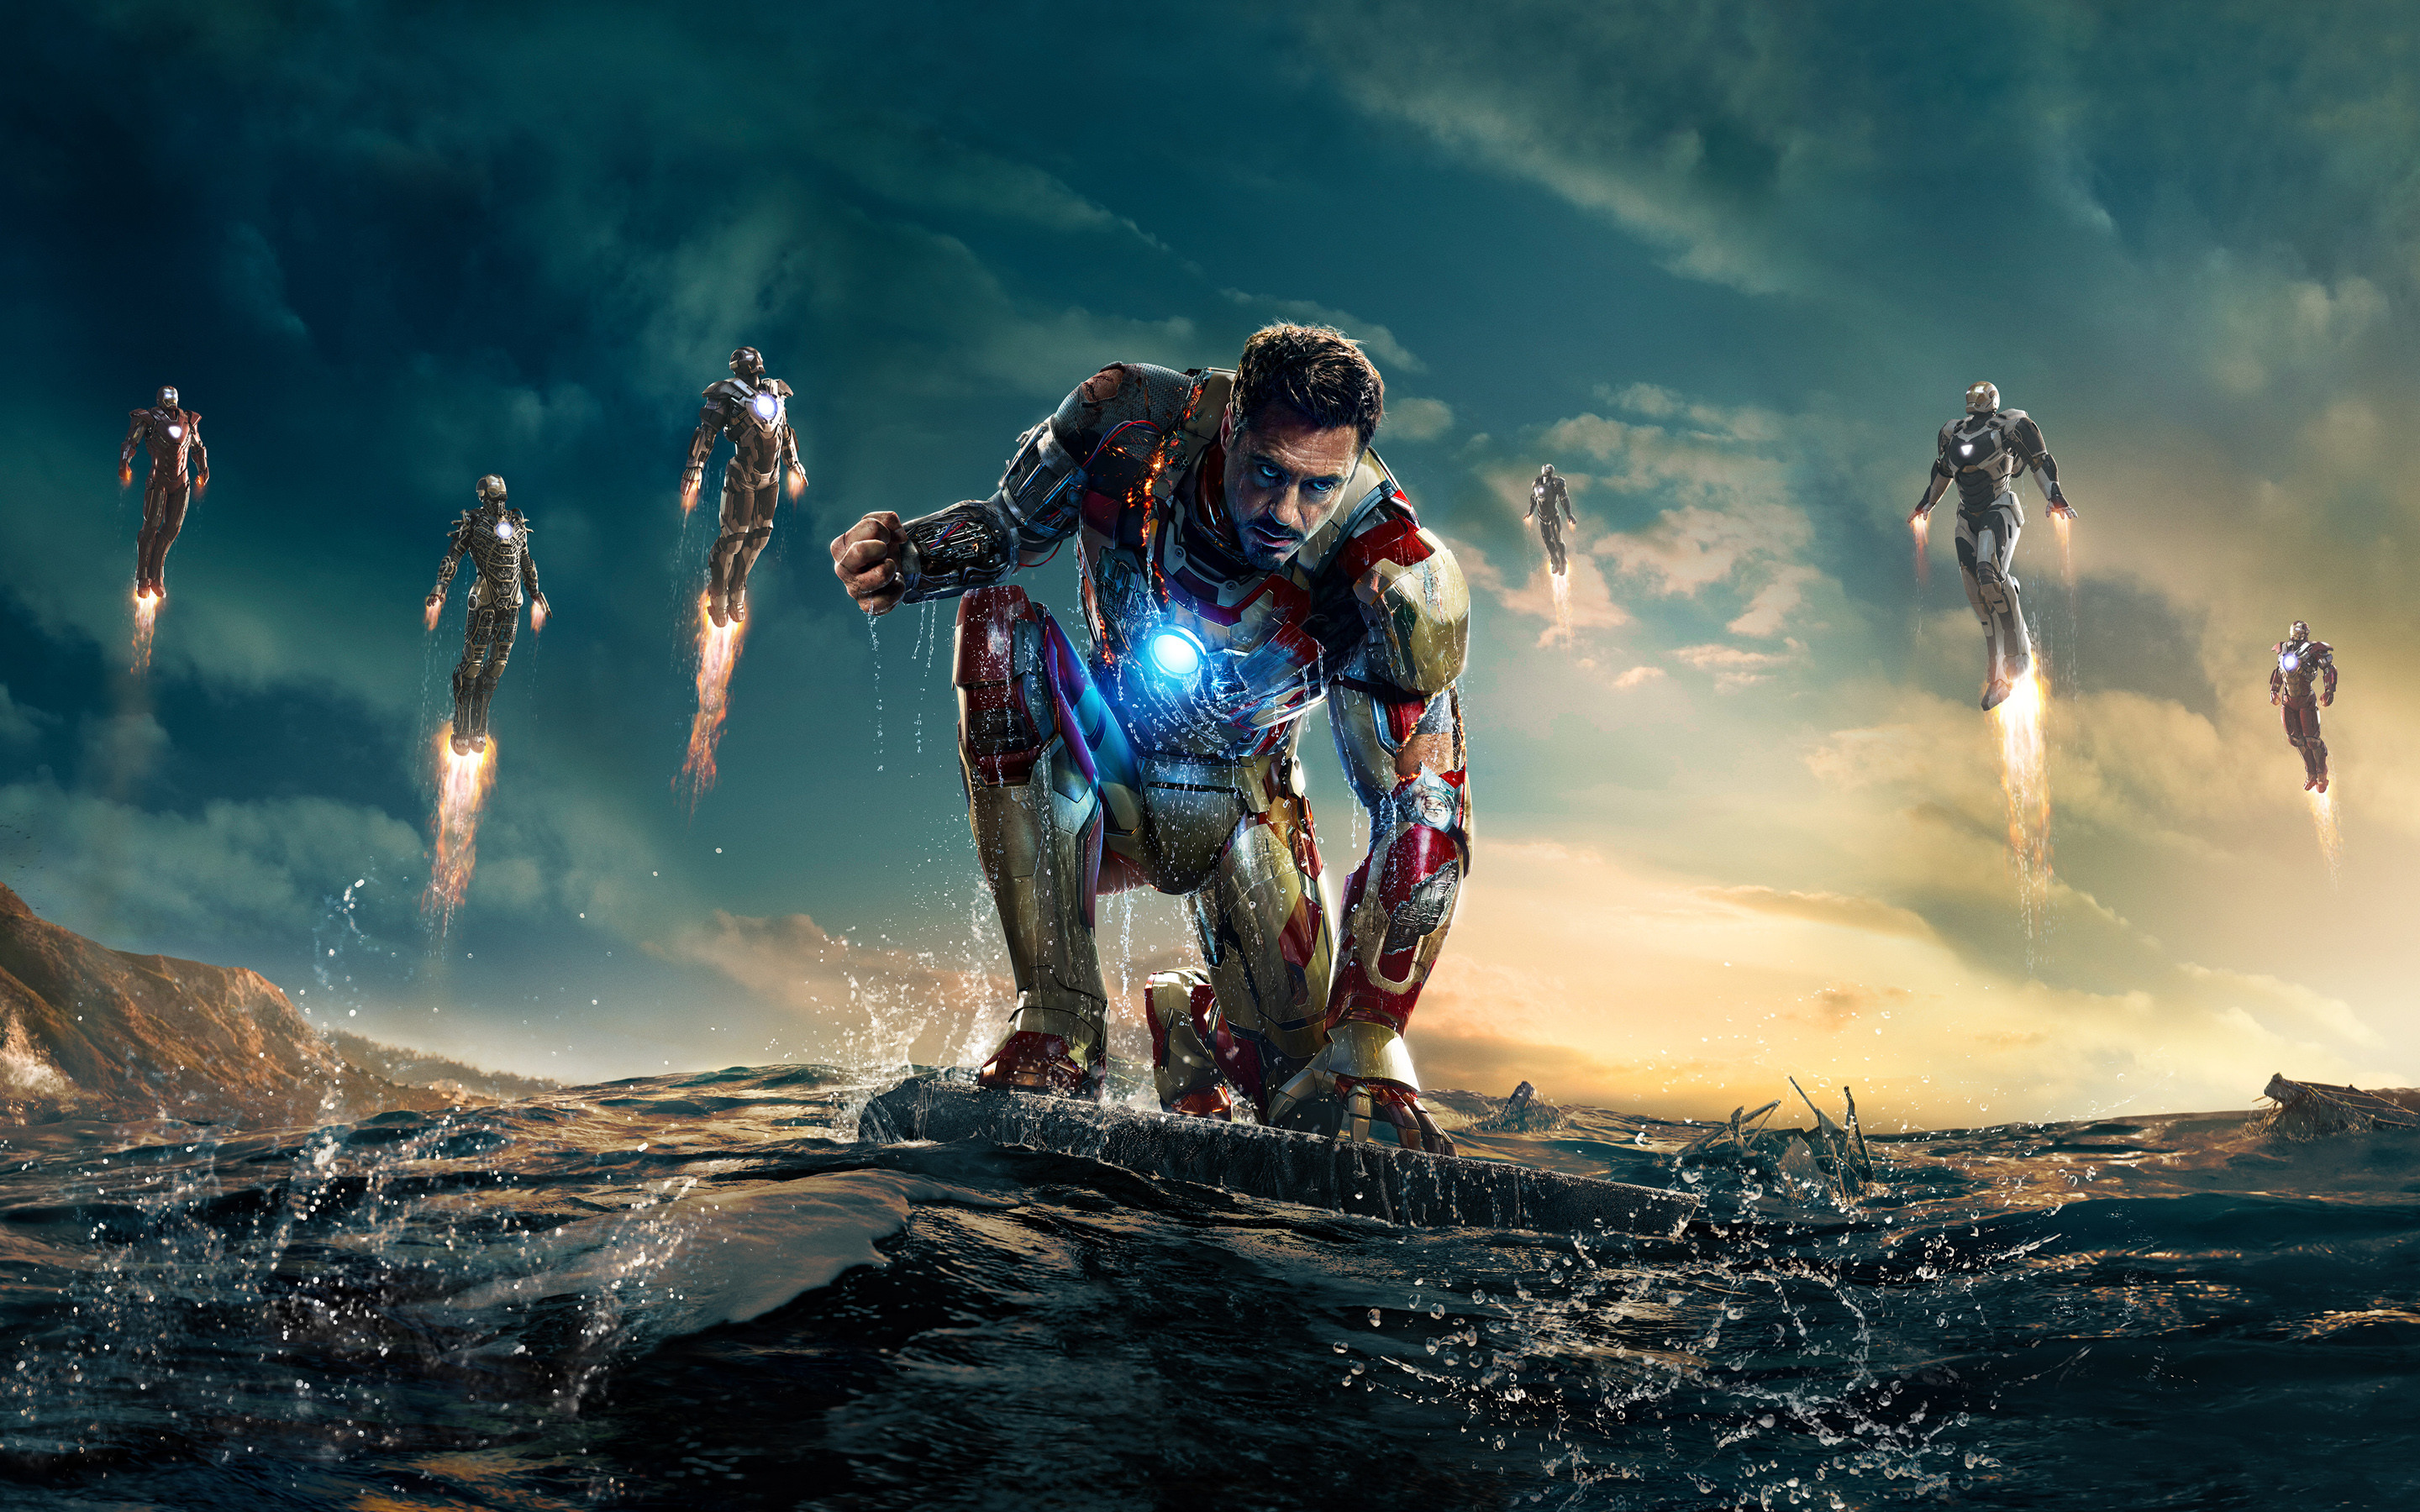 hd wallpapers iron man 3 ·①